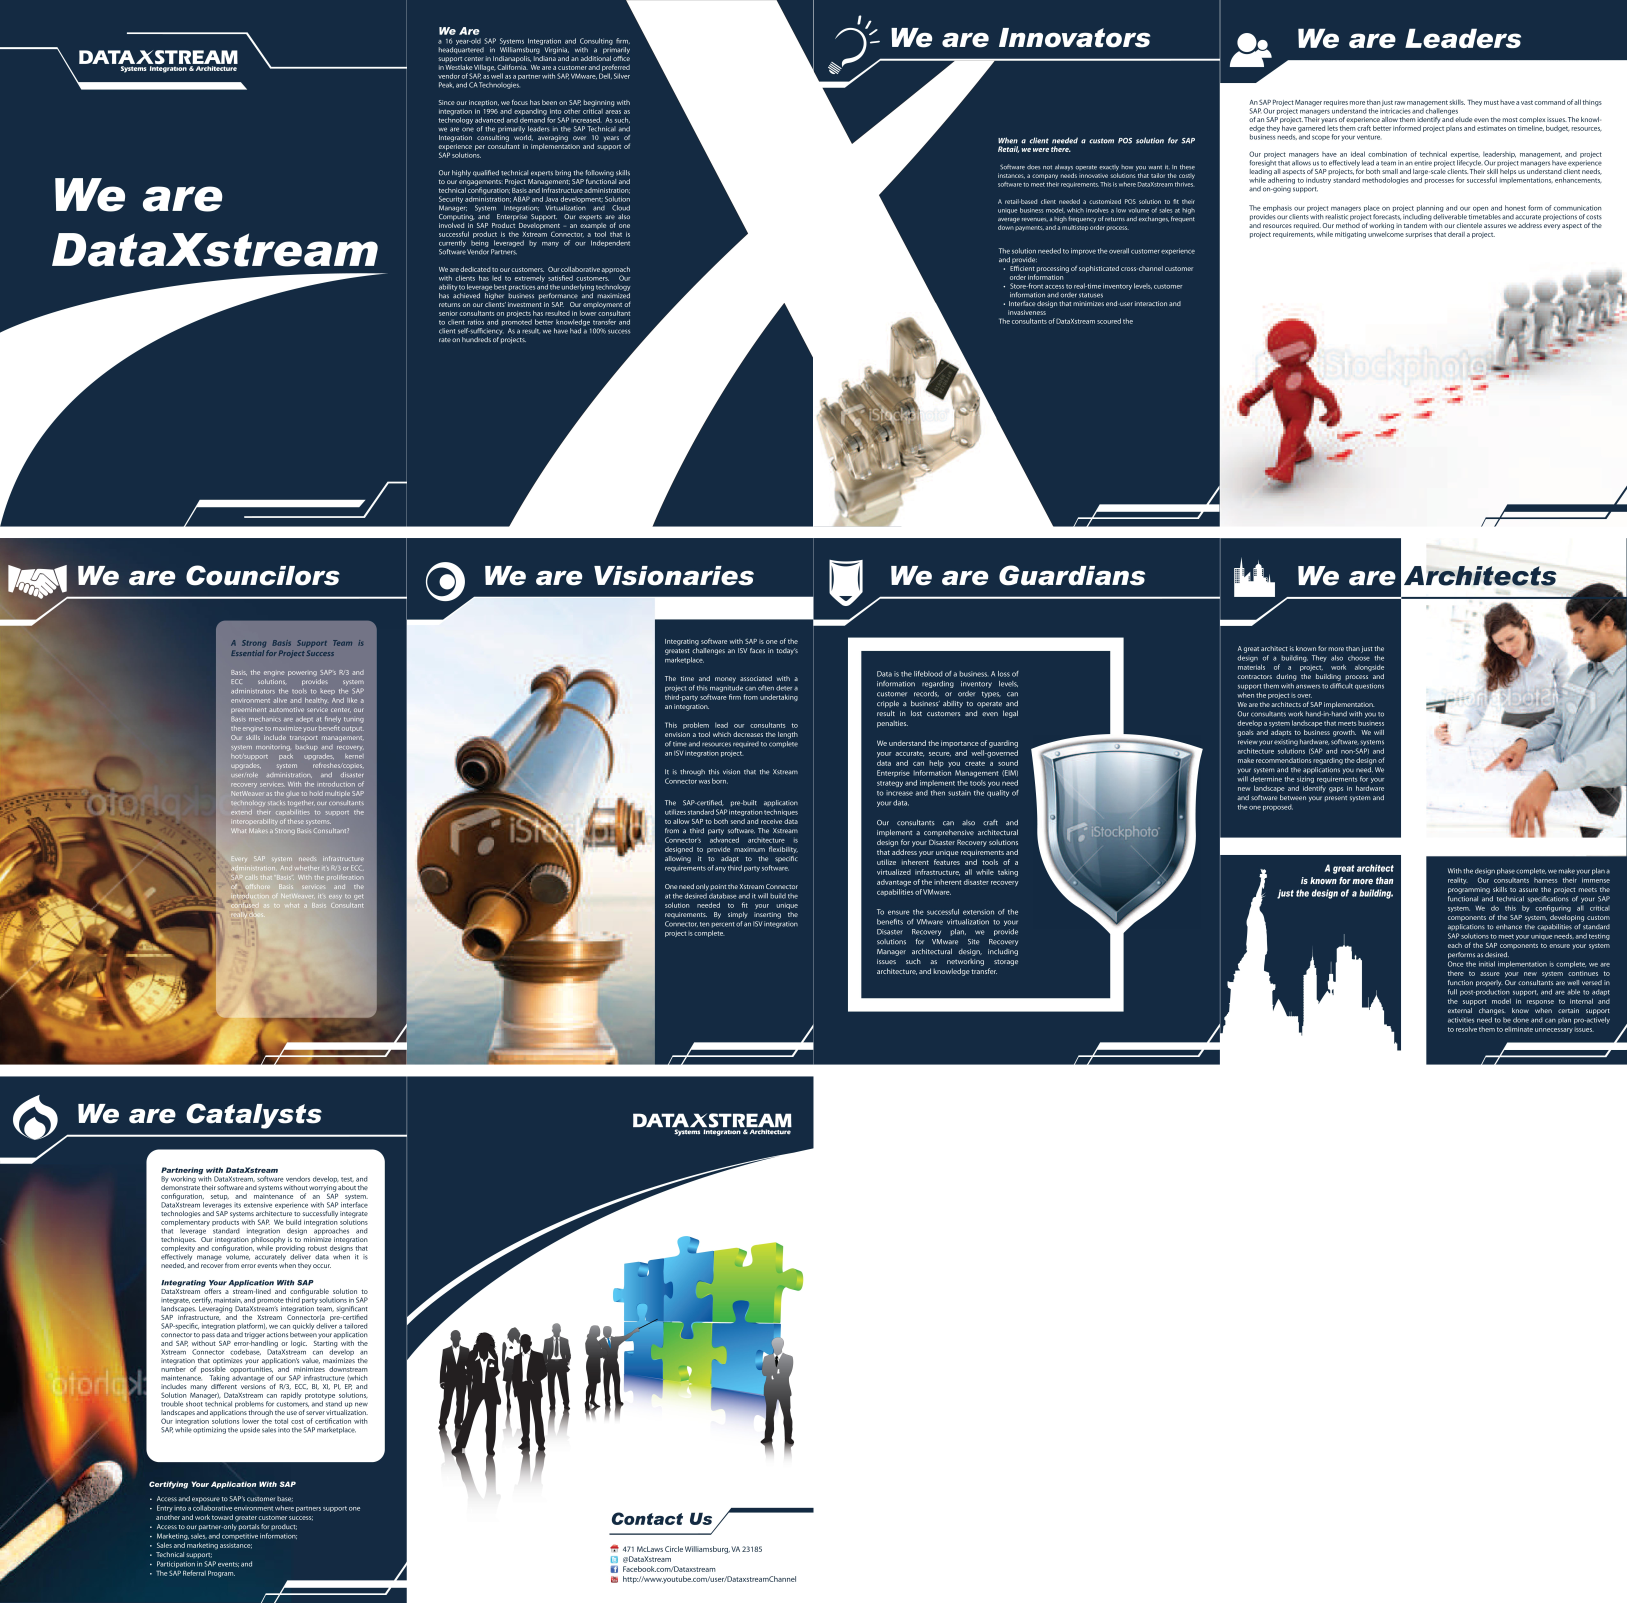 New print or packaging design wanted for DataXstream